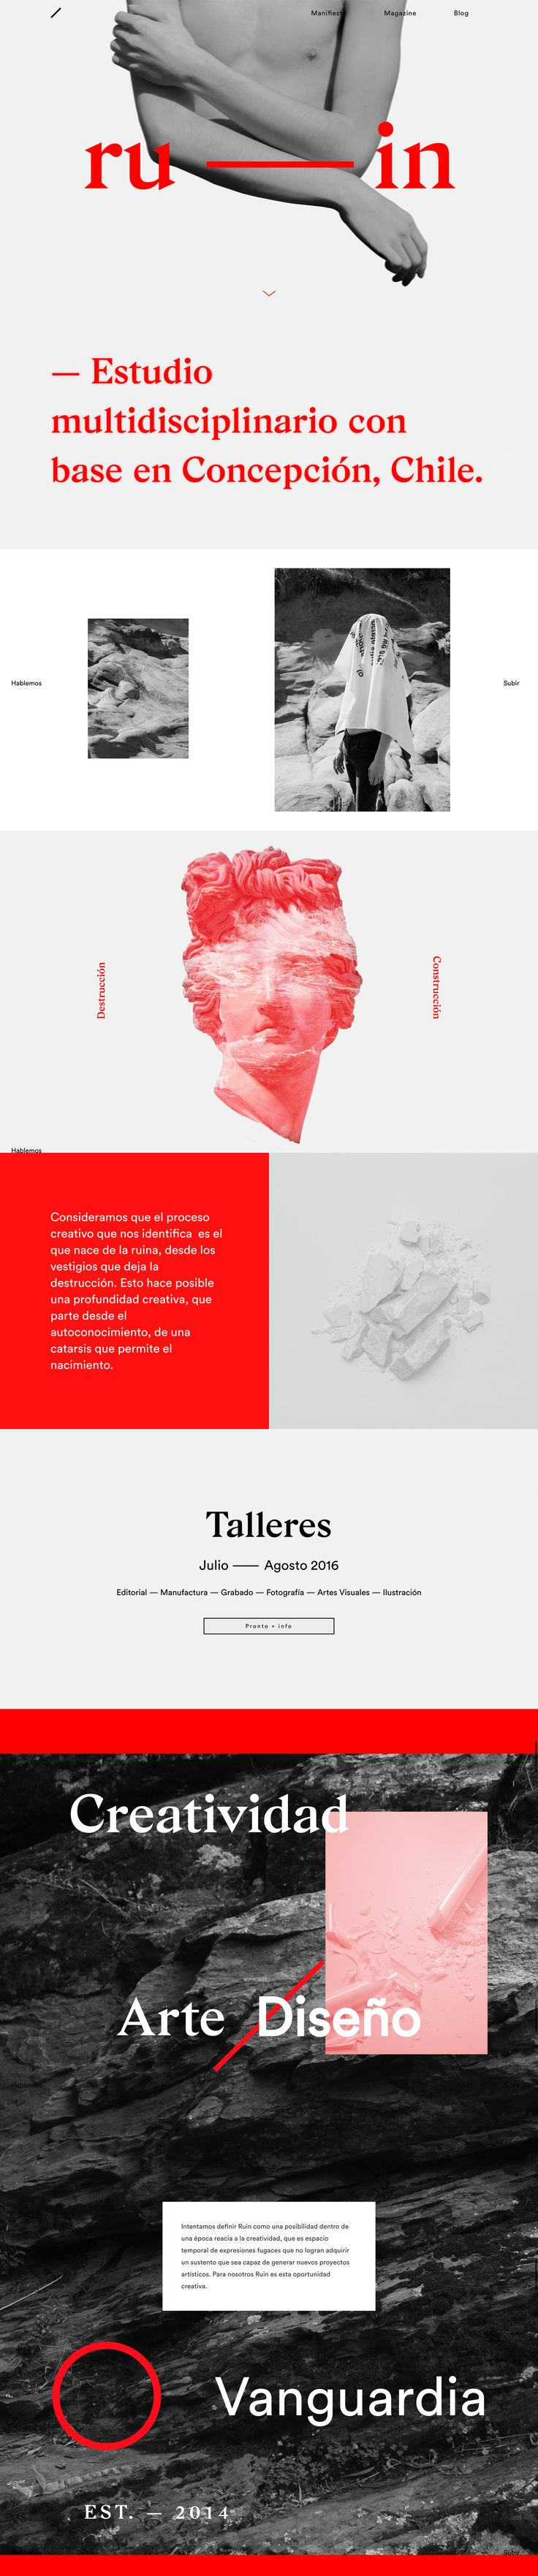 Site of the day: Ruin Mag http://mindsparklemag.com/website/ruin-mag/ #mag #design ruin mag webdesign website beautiful minimal best cool style web html css gallery trend site of the day award mindsparkle mag designblog high quality